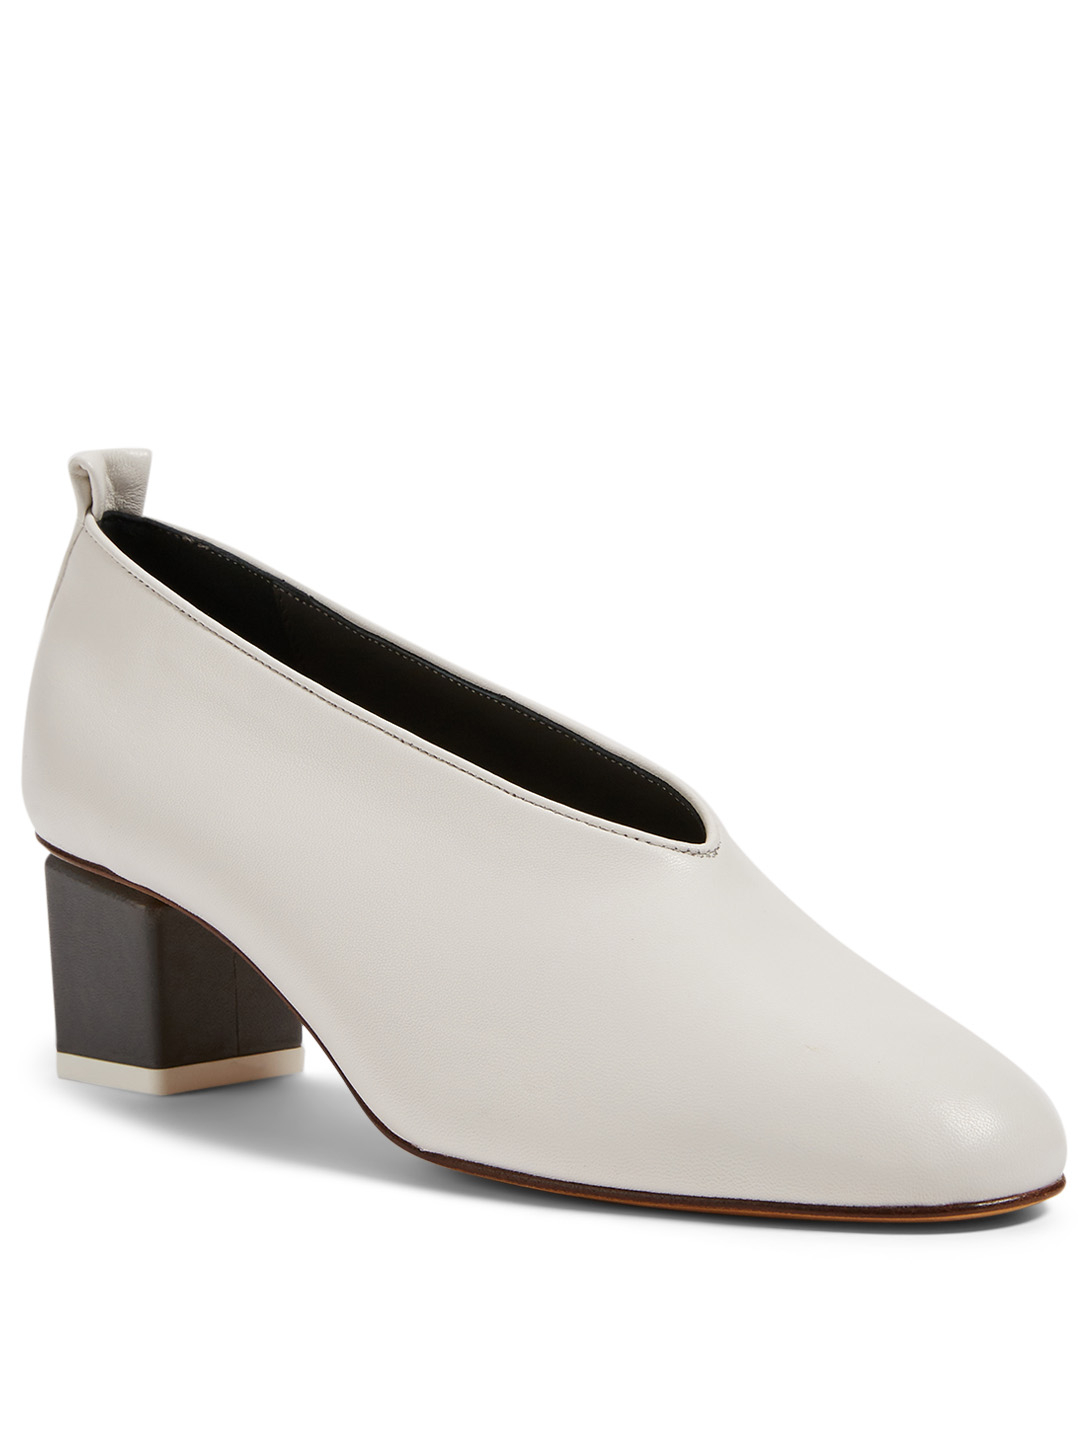 GRAY MATTERS Mildred Leather Pumps Women's White